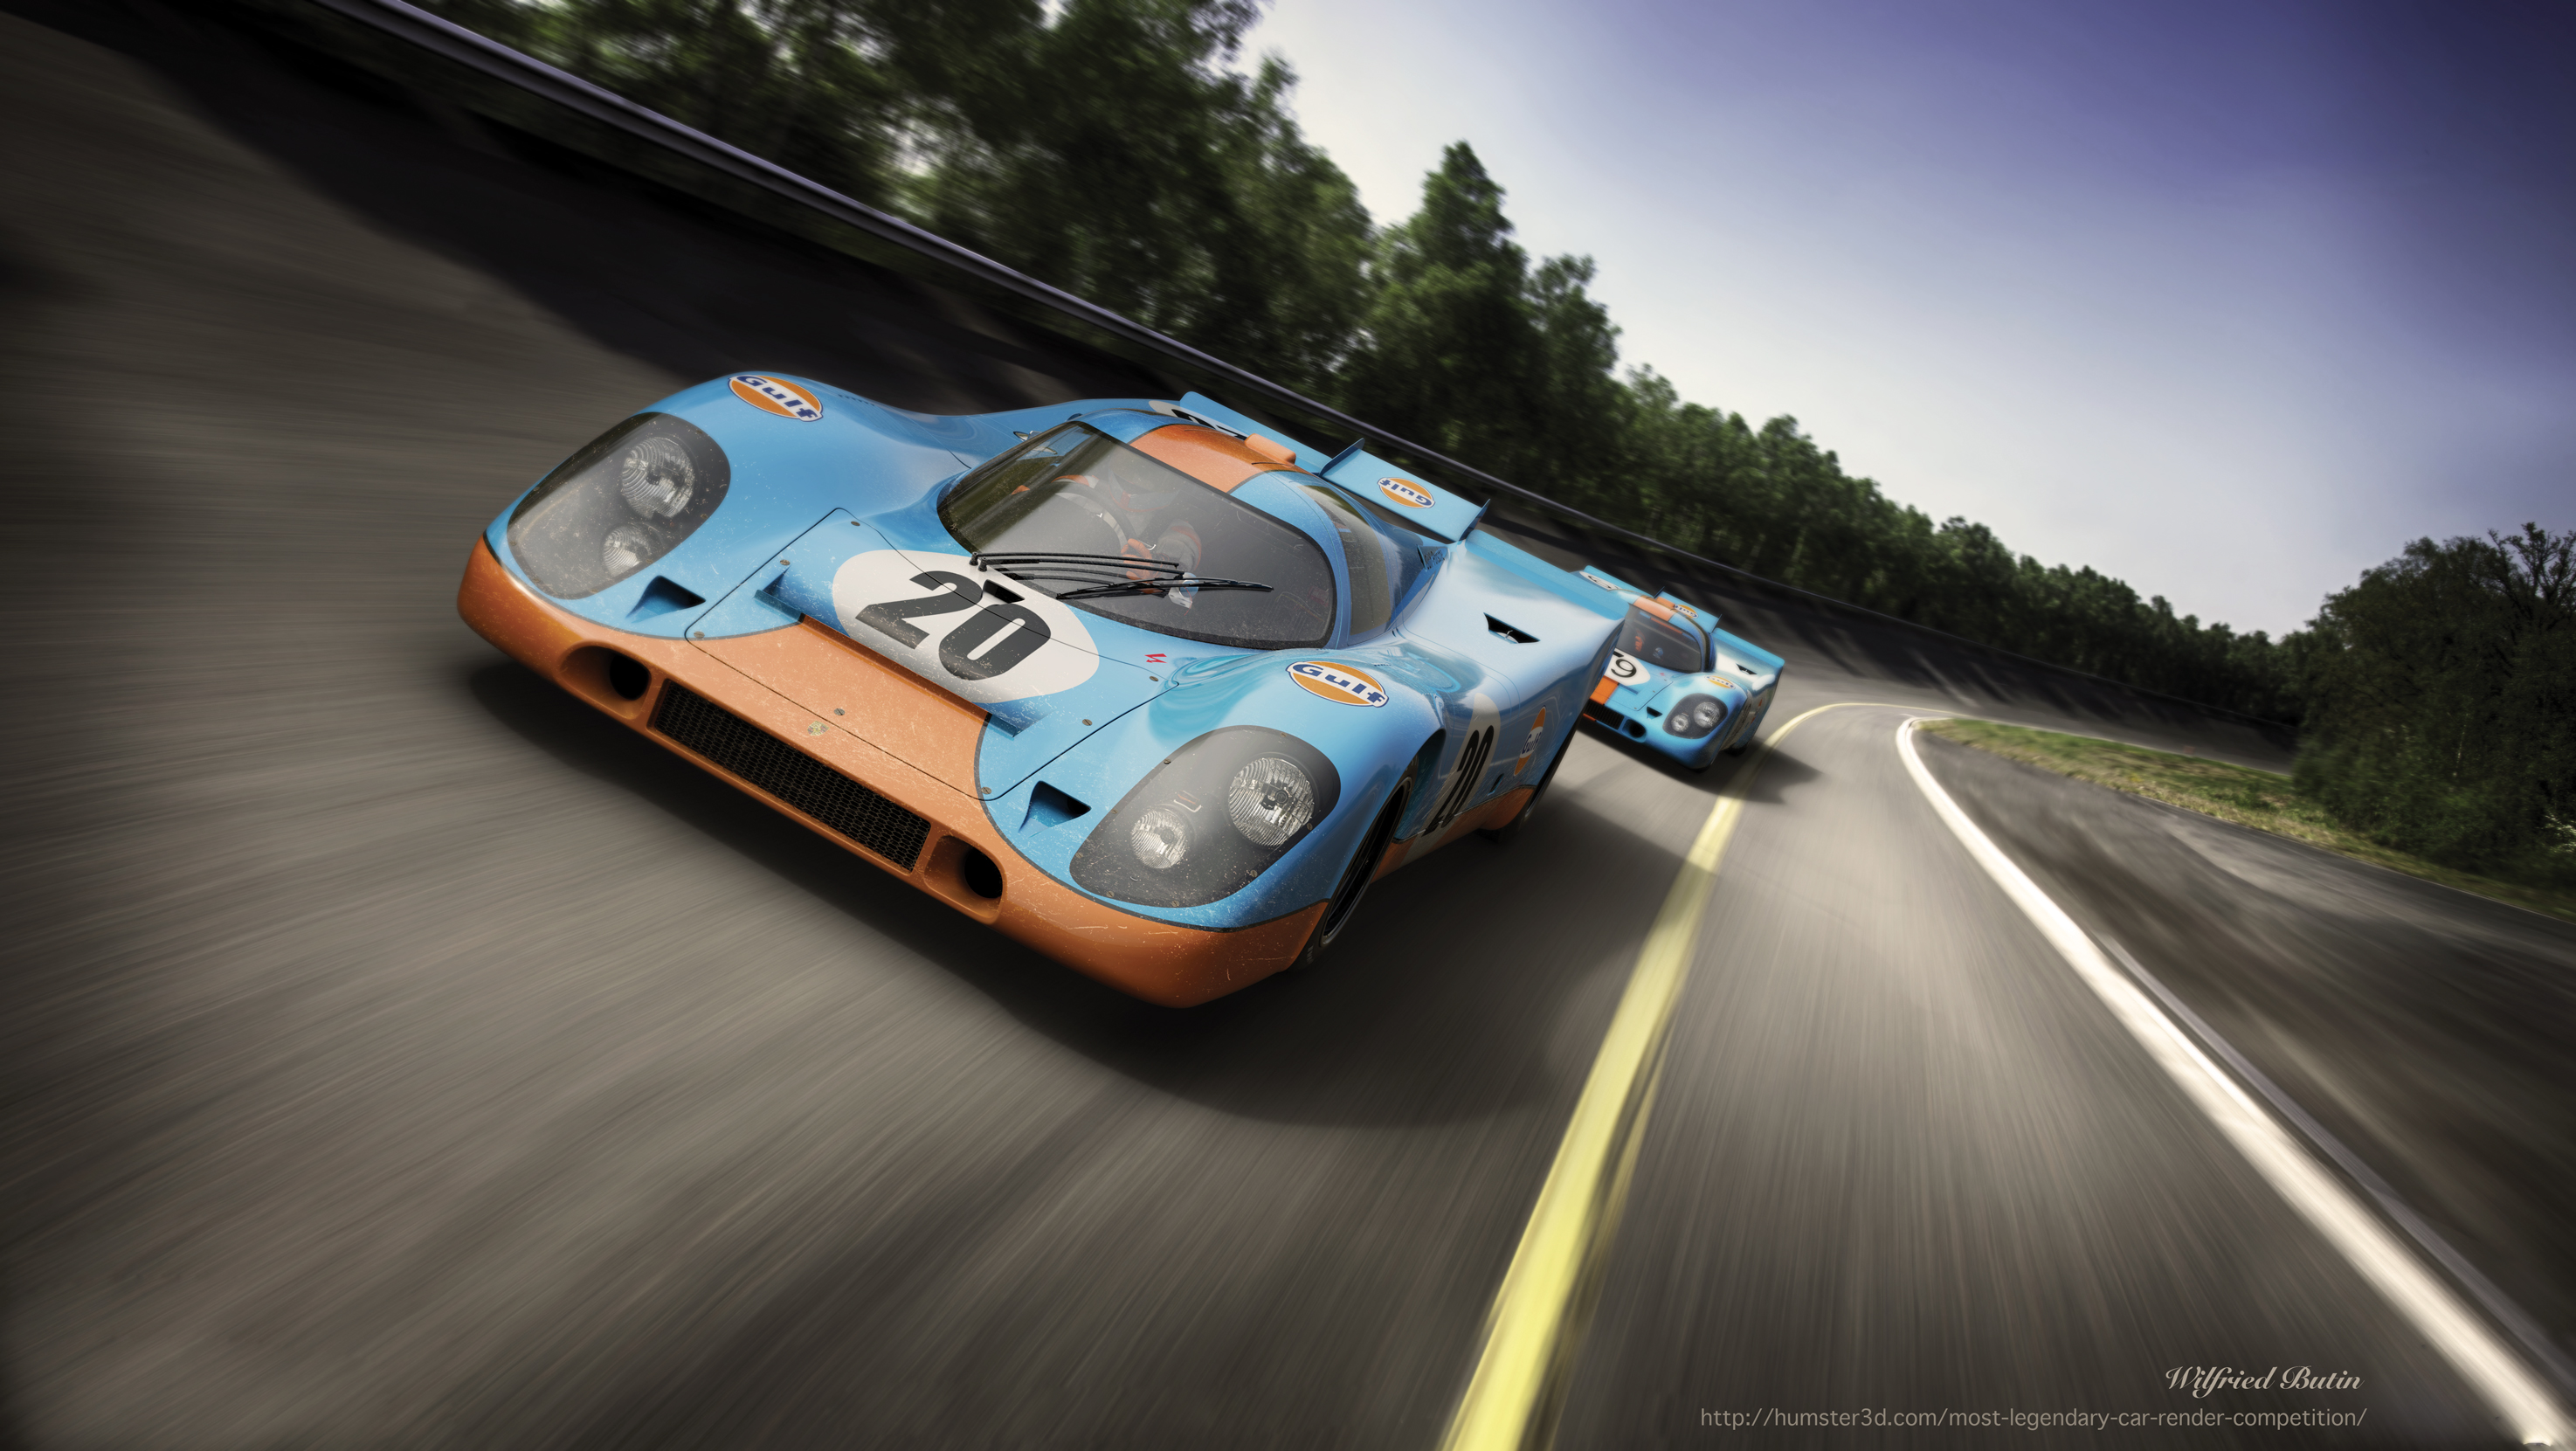 The iconic 917 K 3d art